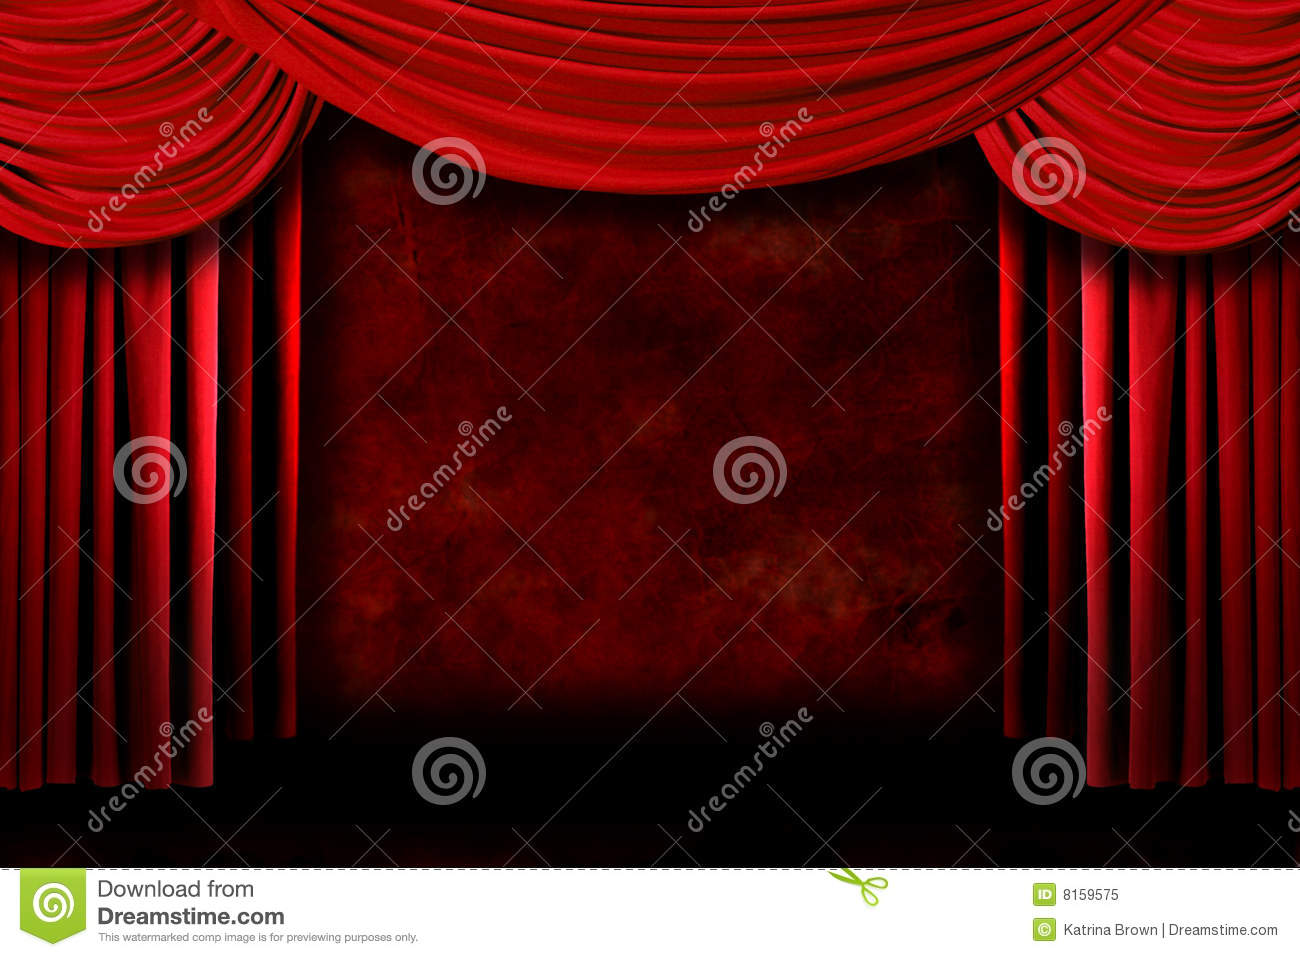 painted download pictures jewelry antique stage curtains and hand kiss drapes theater